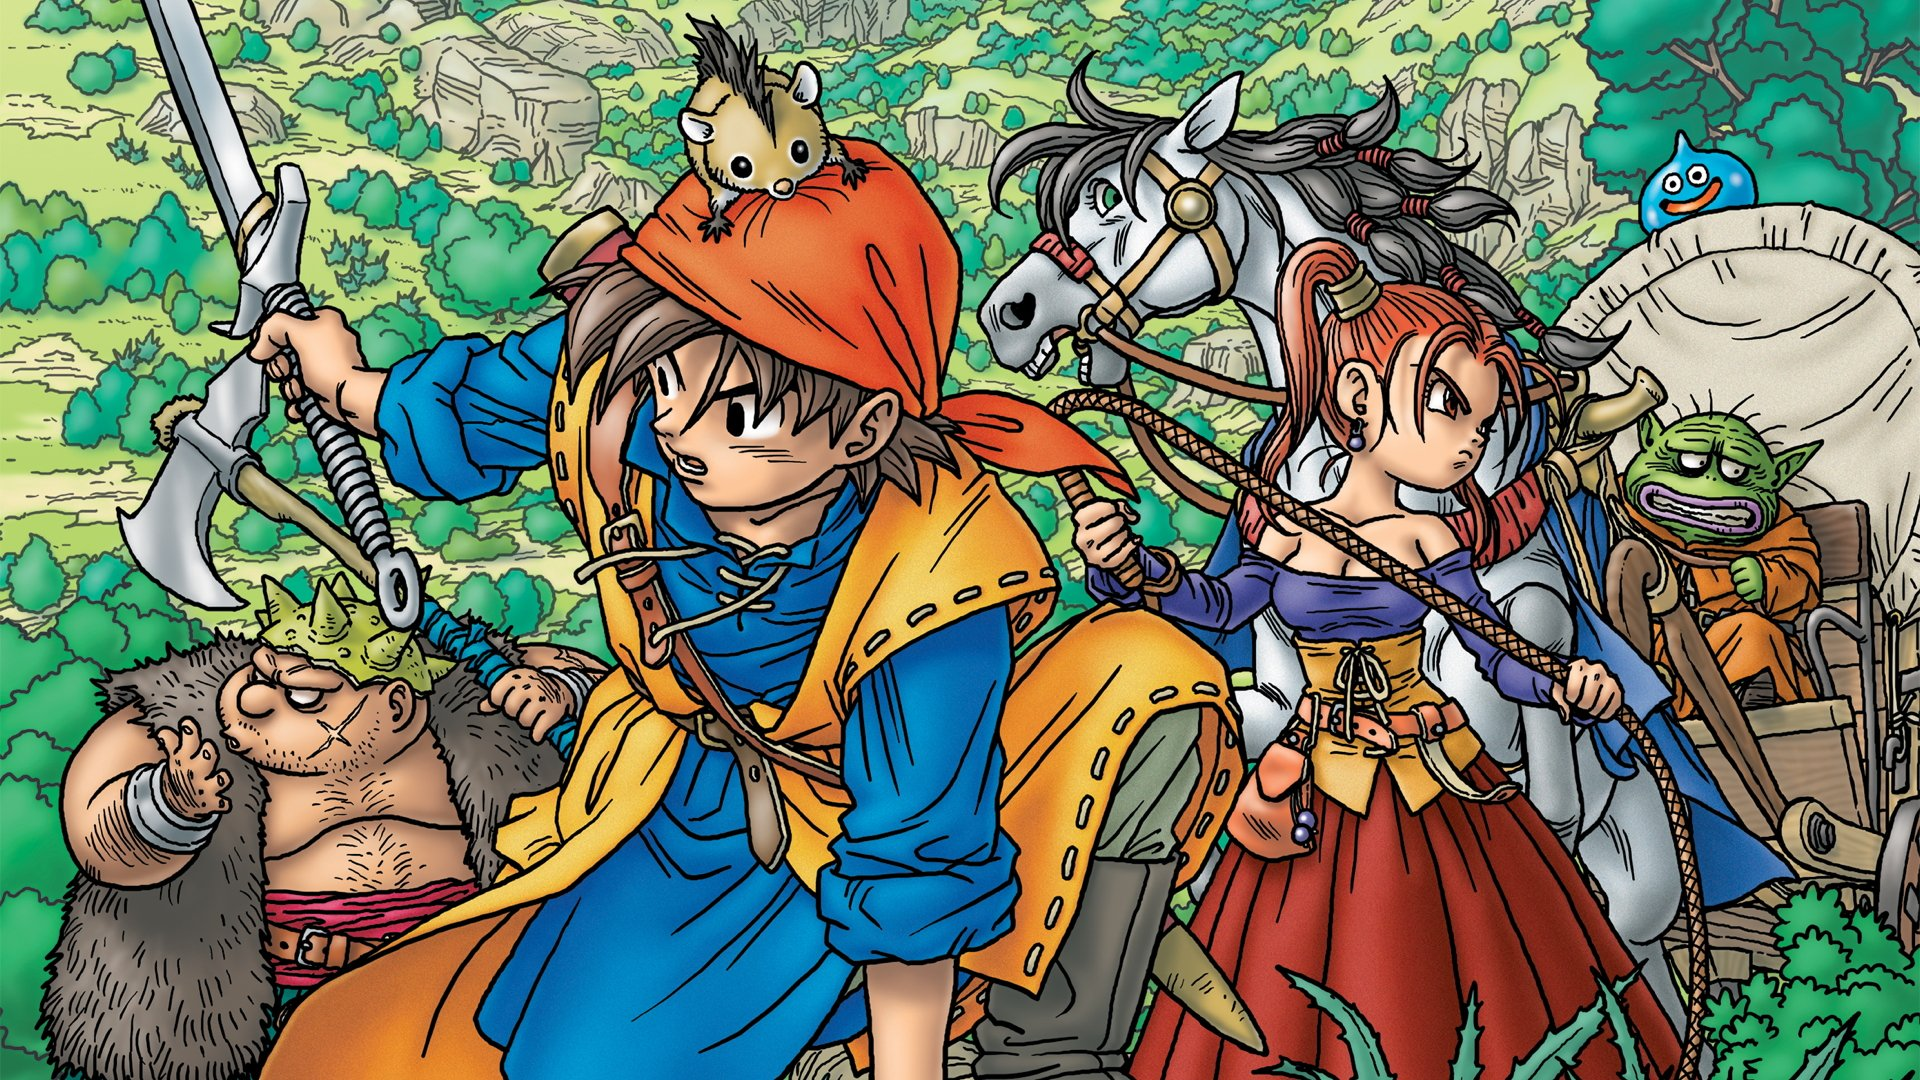 Dragon Quest 7 And 8 Finally Coming To 3DS In The West VG247